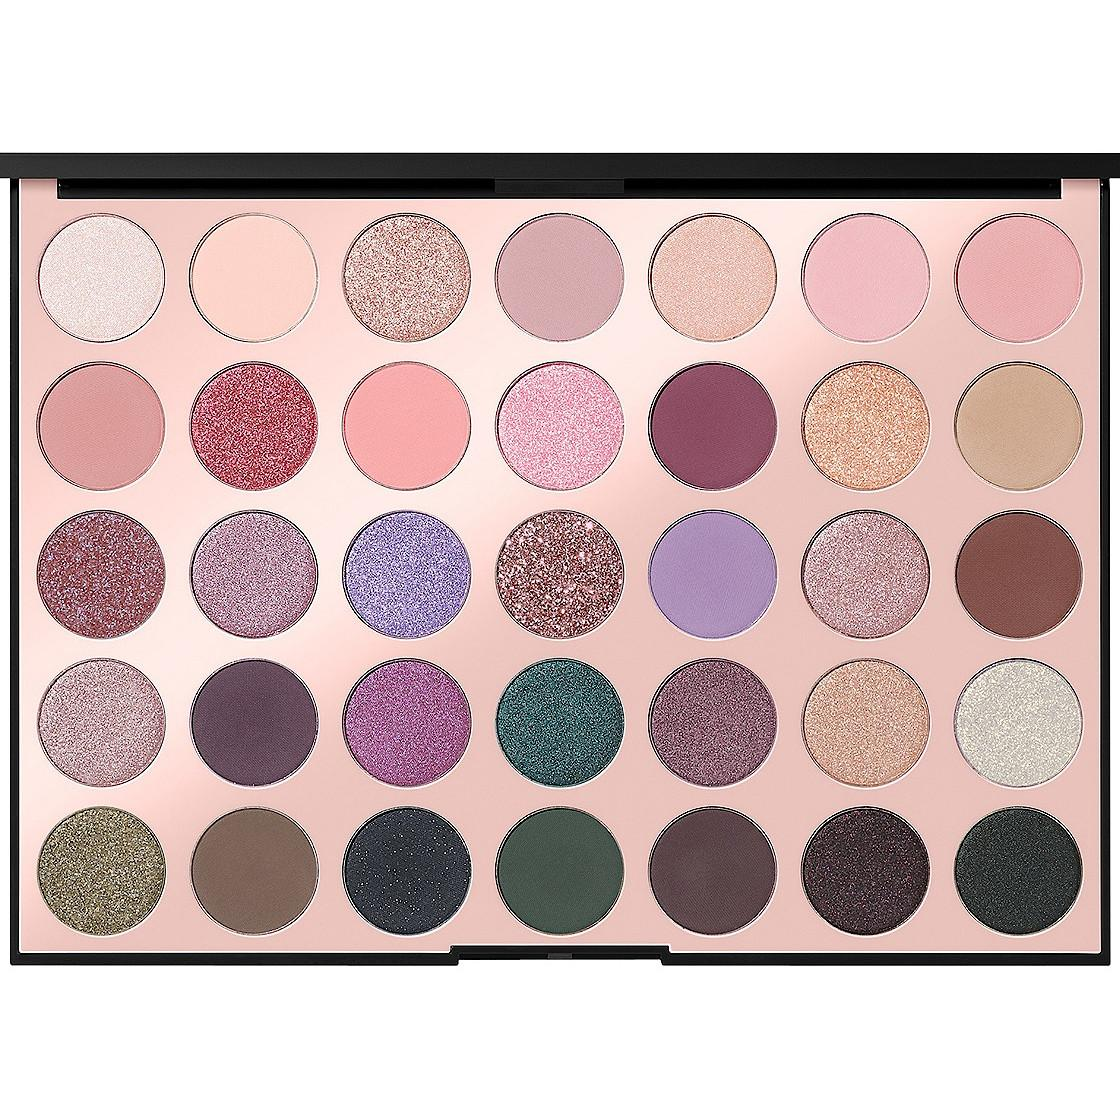 Morphe 35C Everyday Chic Artistry Palette Open Front Closer